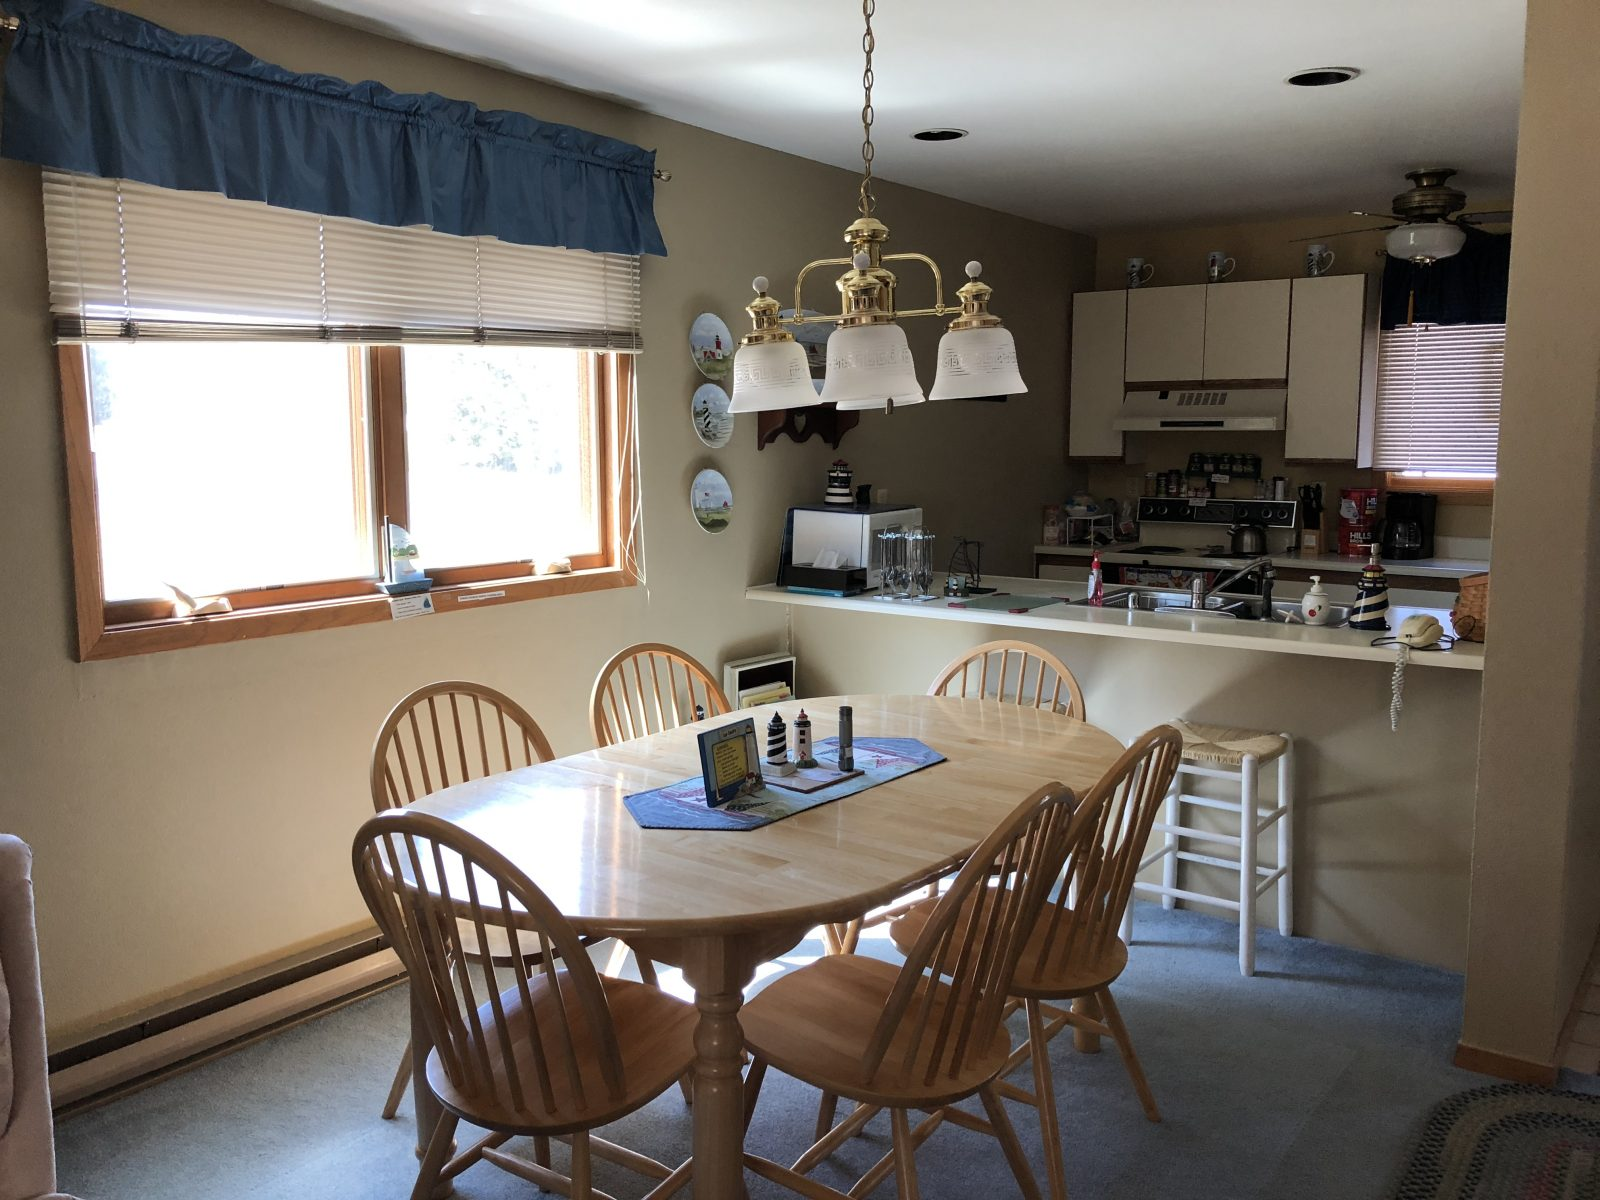 Orchard Condo Bldg 3 Unit 5 In Uptown Sister Bay